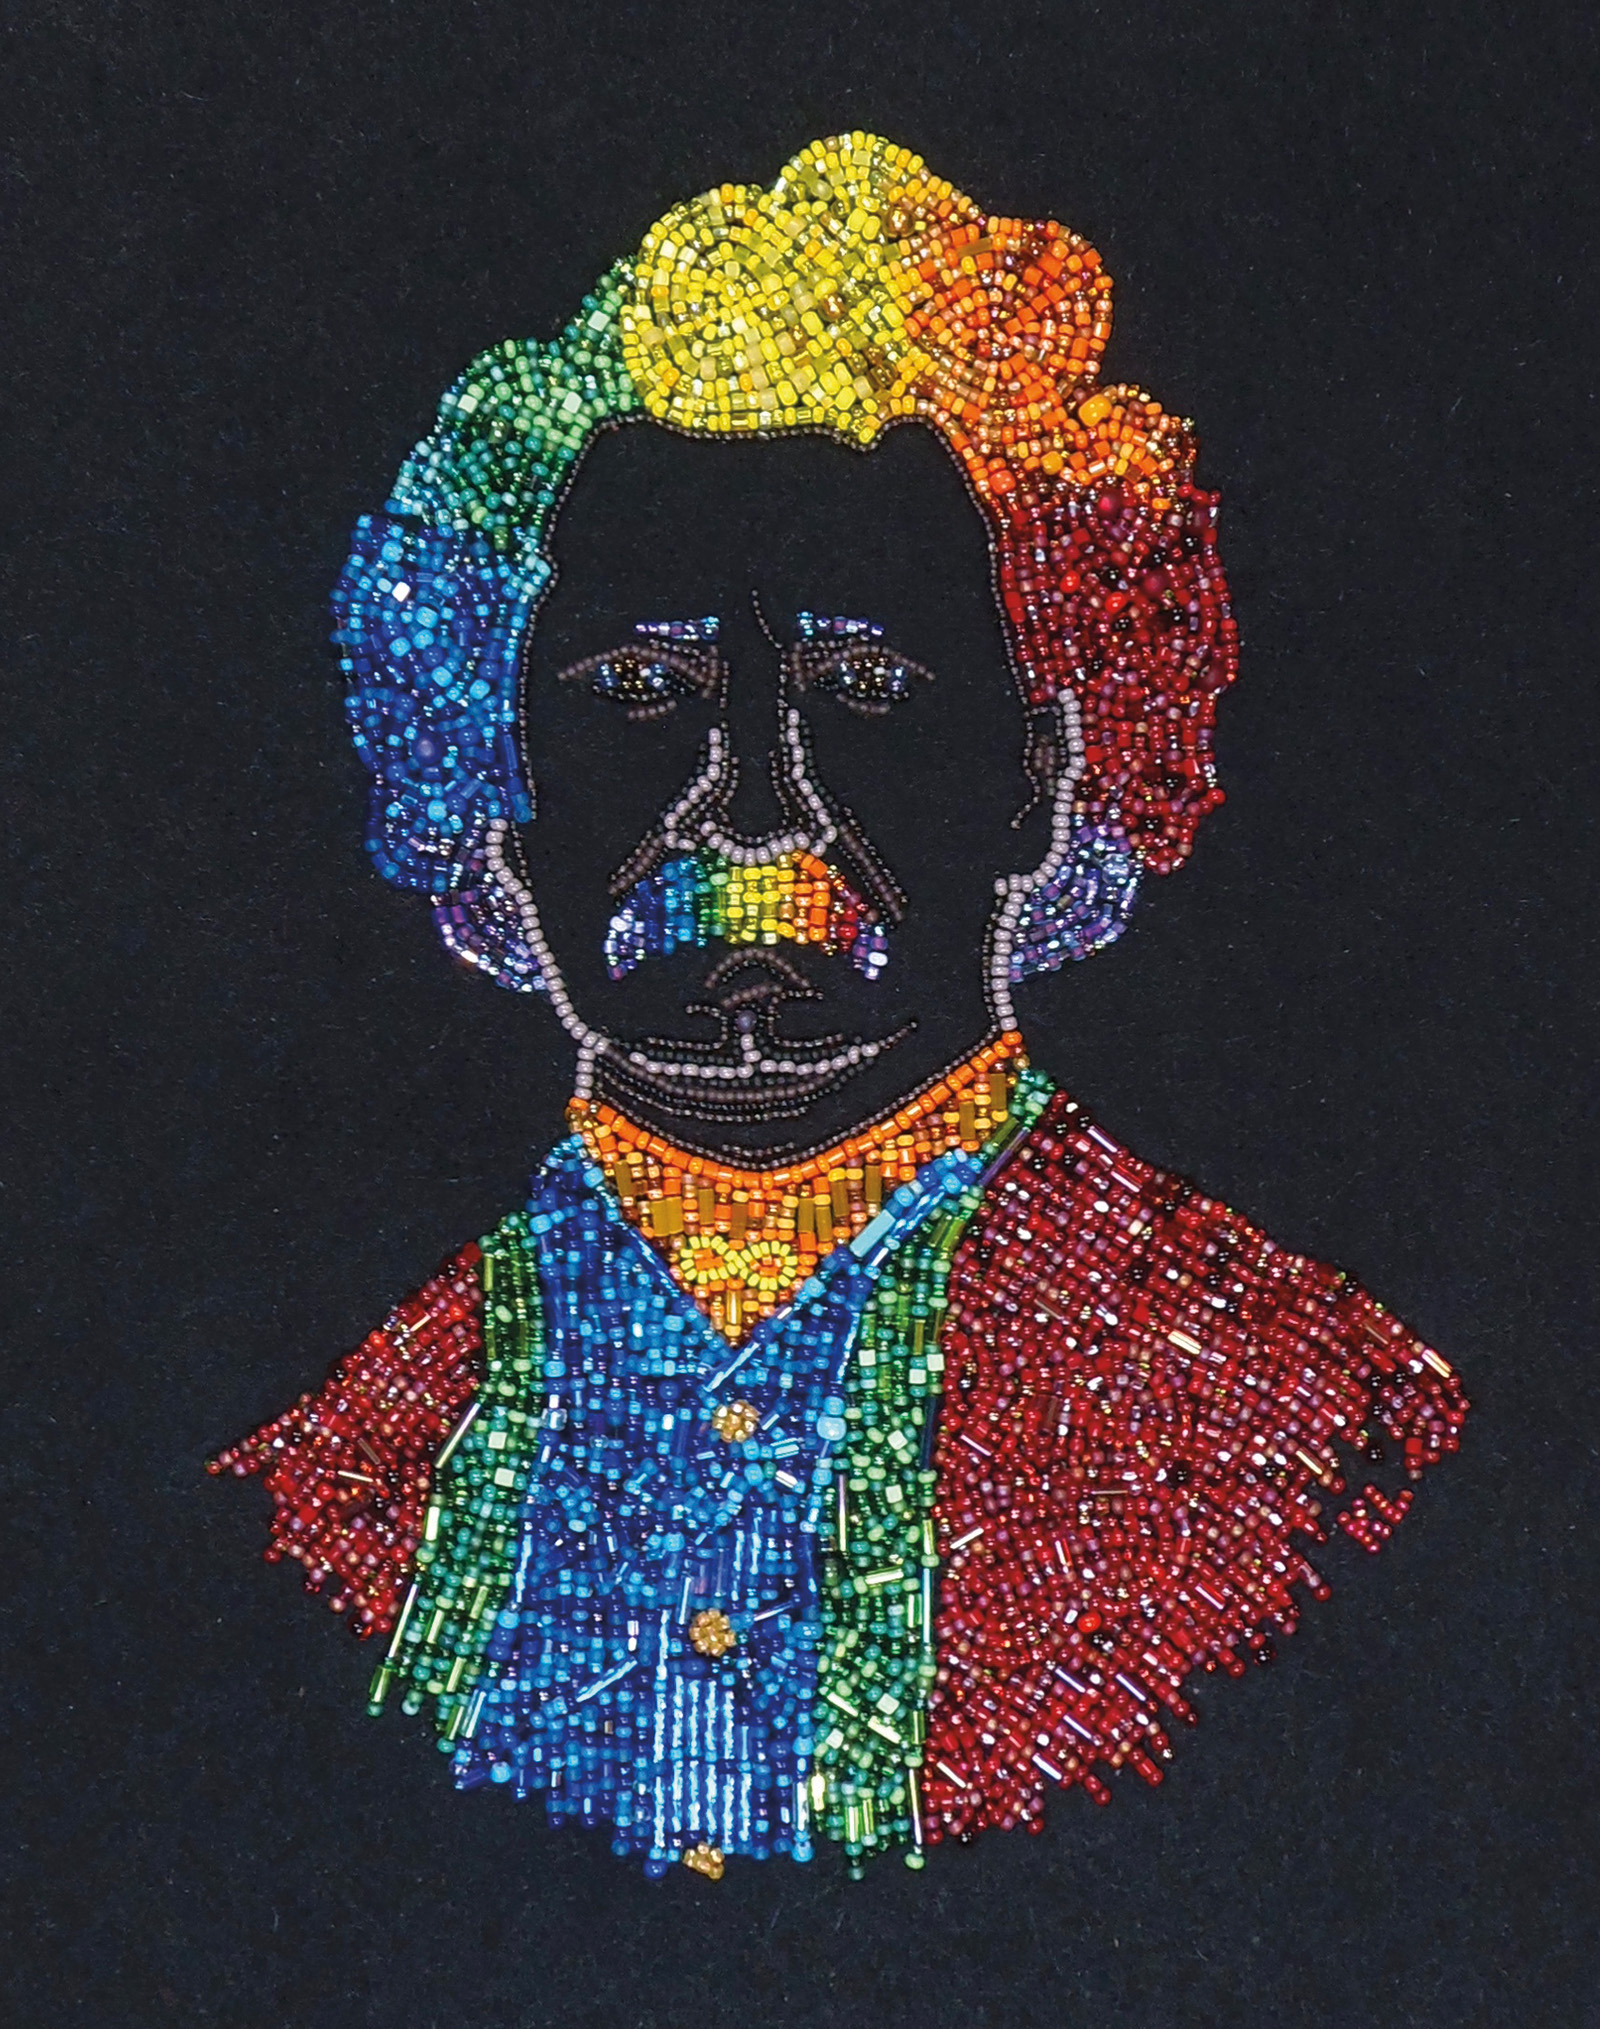 Louis Riel beaded by Krista Leddy